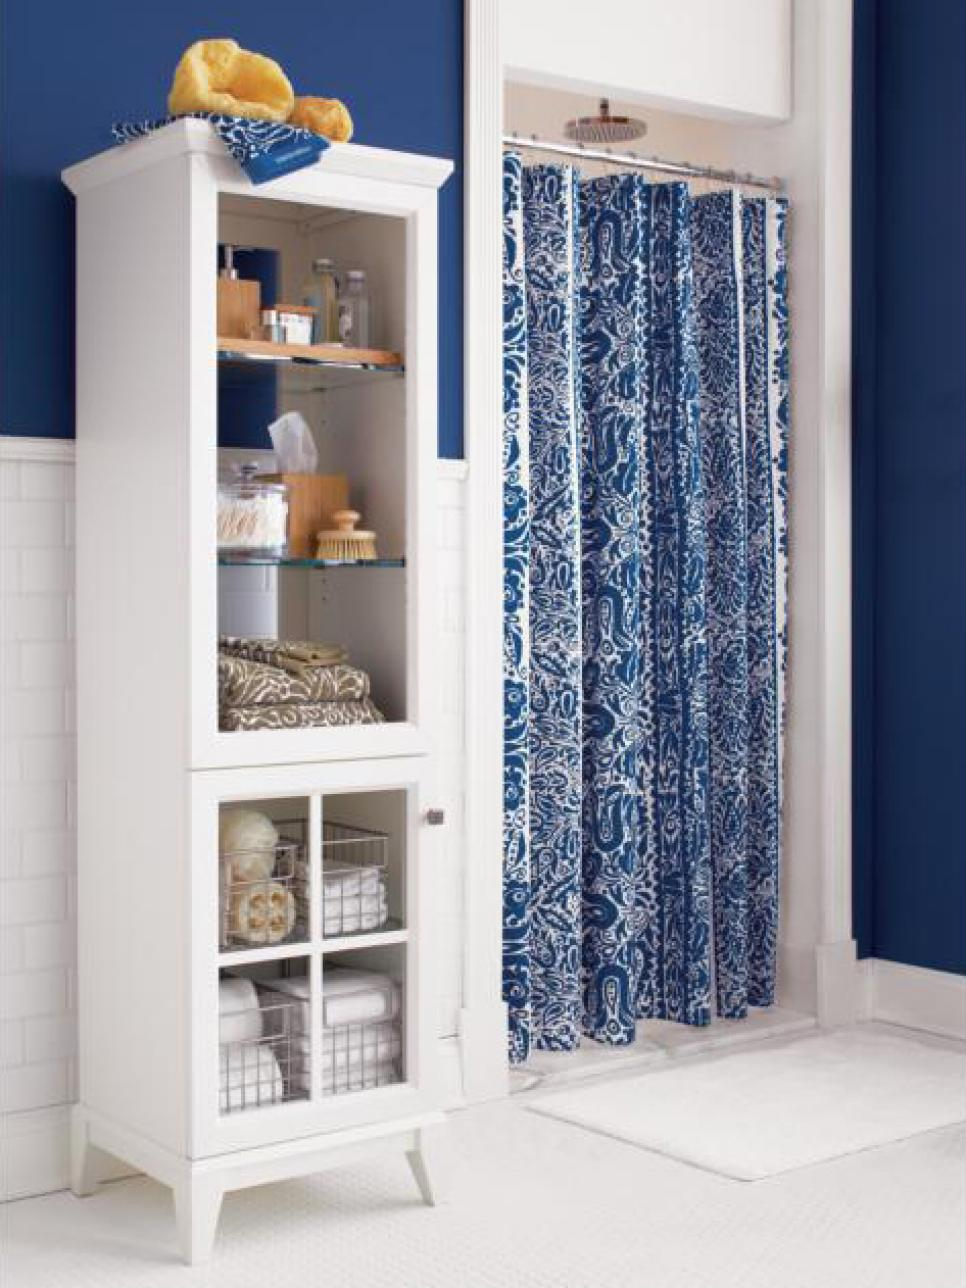 Mgnificent Bathroom Using Blue Curtain also High Shelve For Toiletries